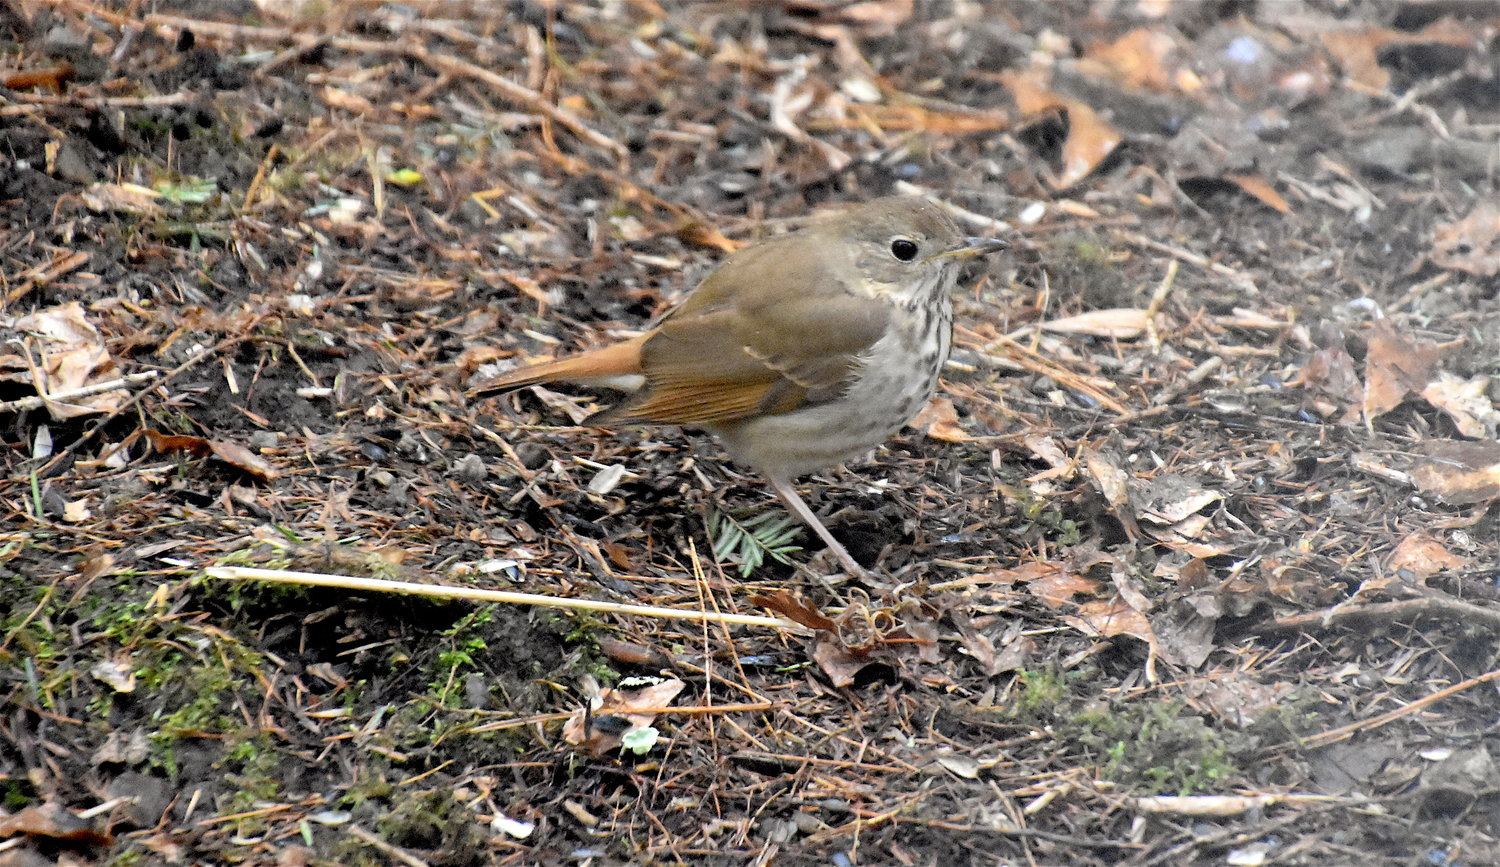 The hermit thrush is a round-bodied brownish bird with a notably reddish tail and thin white eye-ring. Its throat is mottled with spots that fade to smudges on its pale underside.